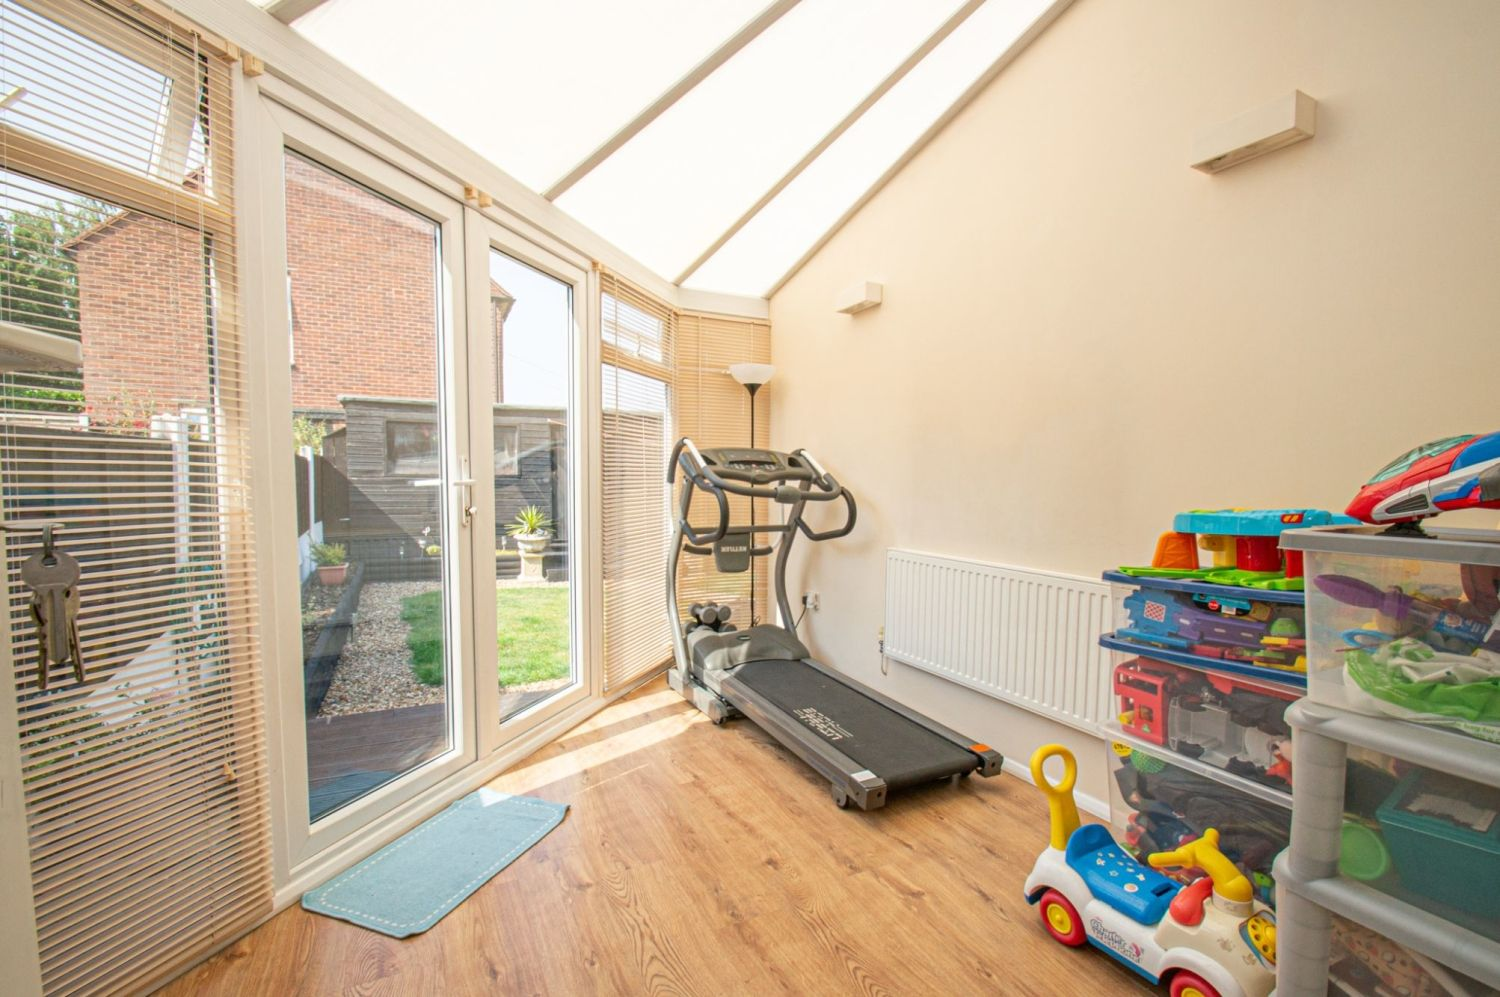 4 bed semi-detached for sale in Oak Street, Kingswinford  - Property Image 5